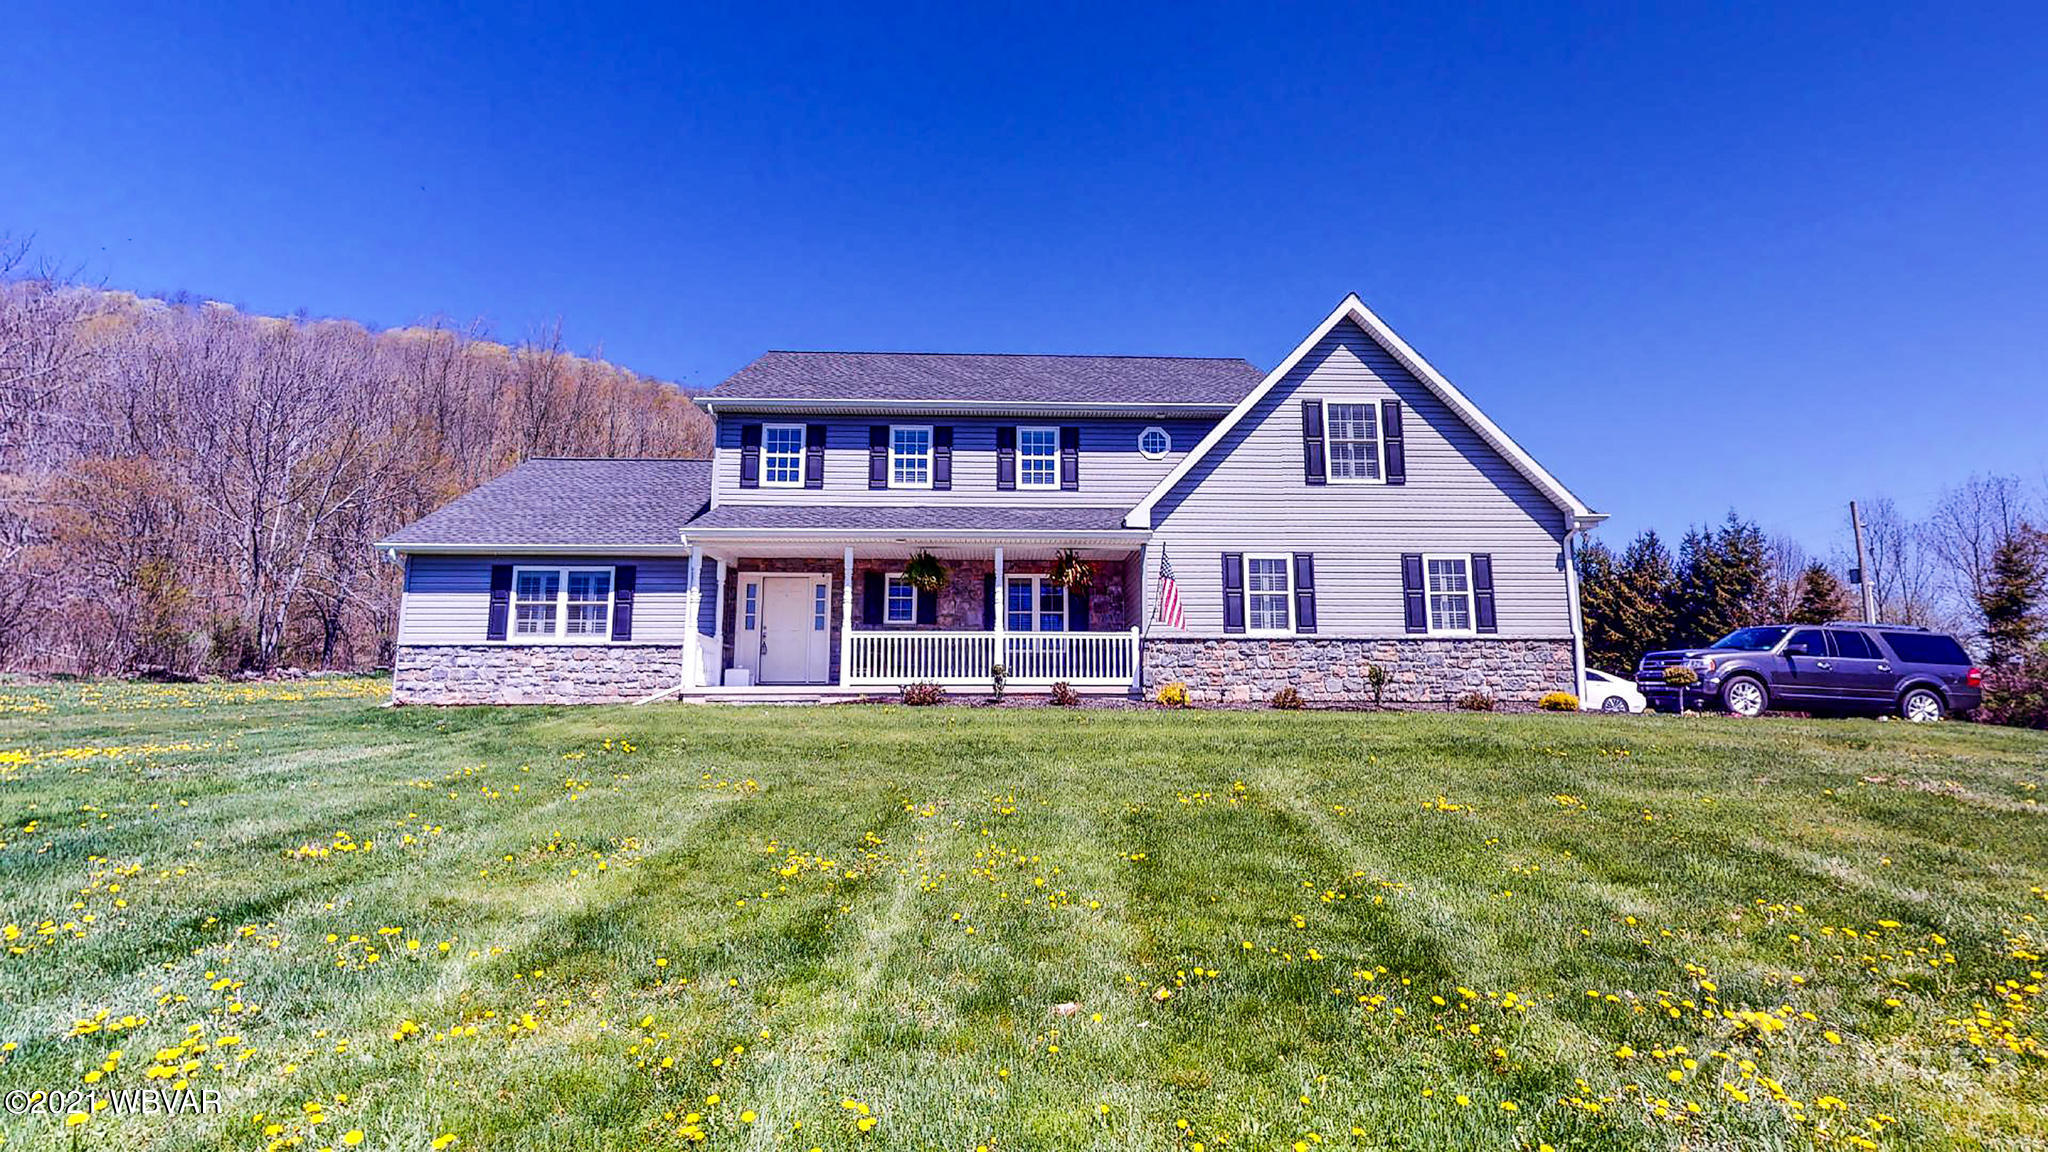 15229 STATE RTE 414 ROUTE, Canton, PA 17724, 4 Bedrooms Bedrooms, ,3 BathroomsBathrooms,Residential,For sale,STATE RTE 414,WB-92445